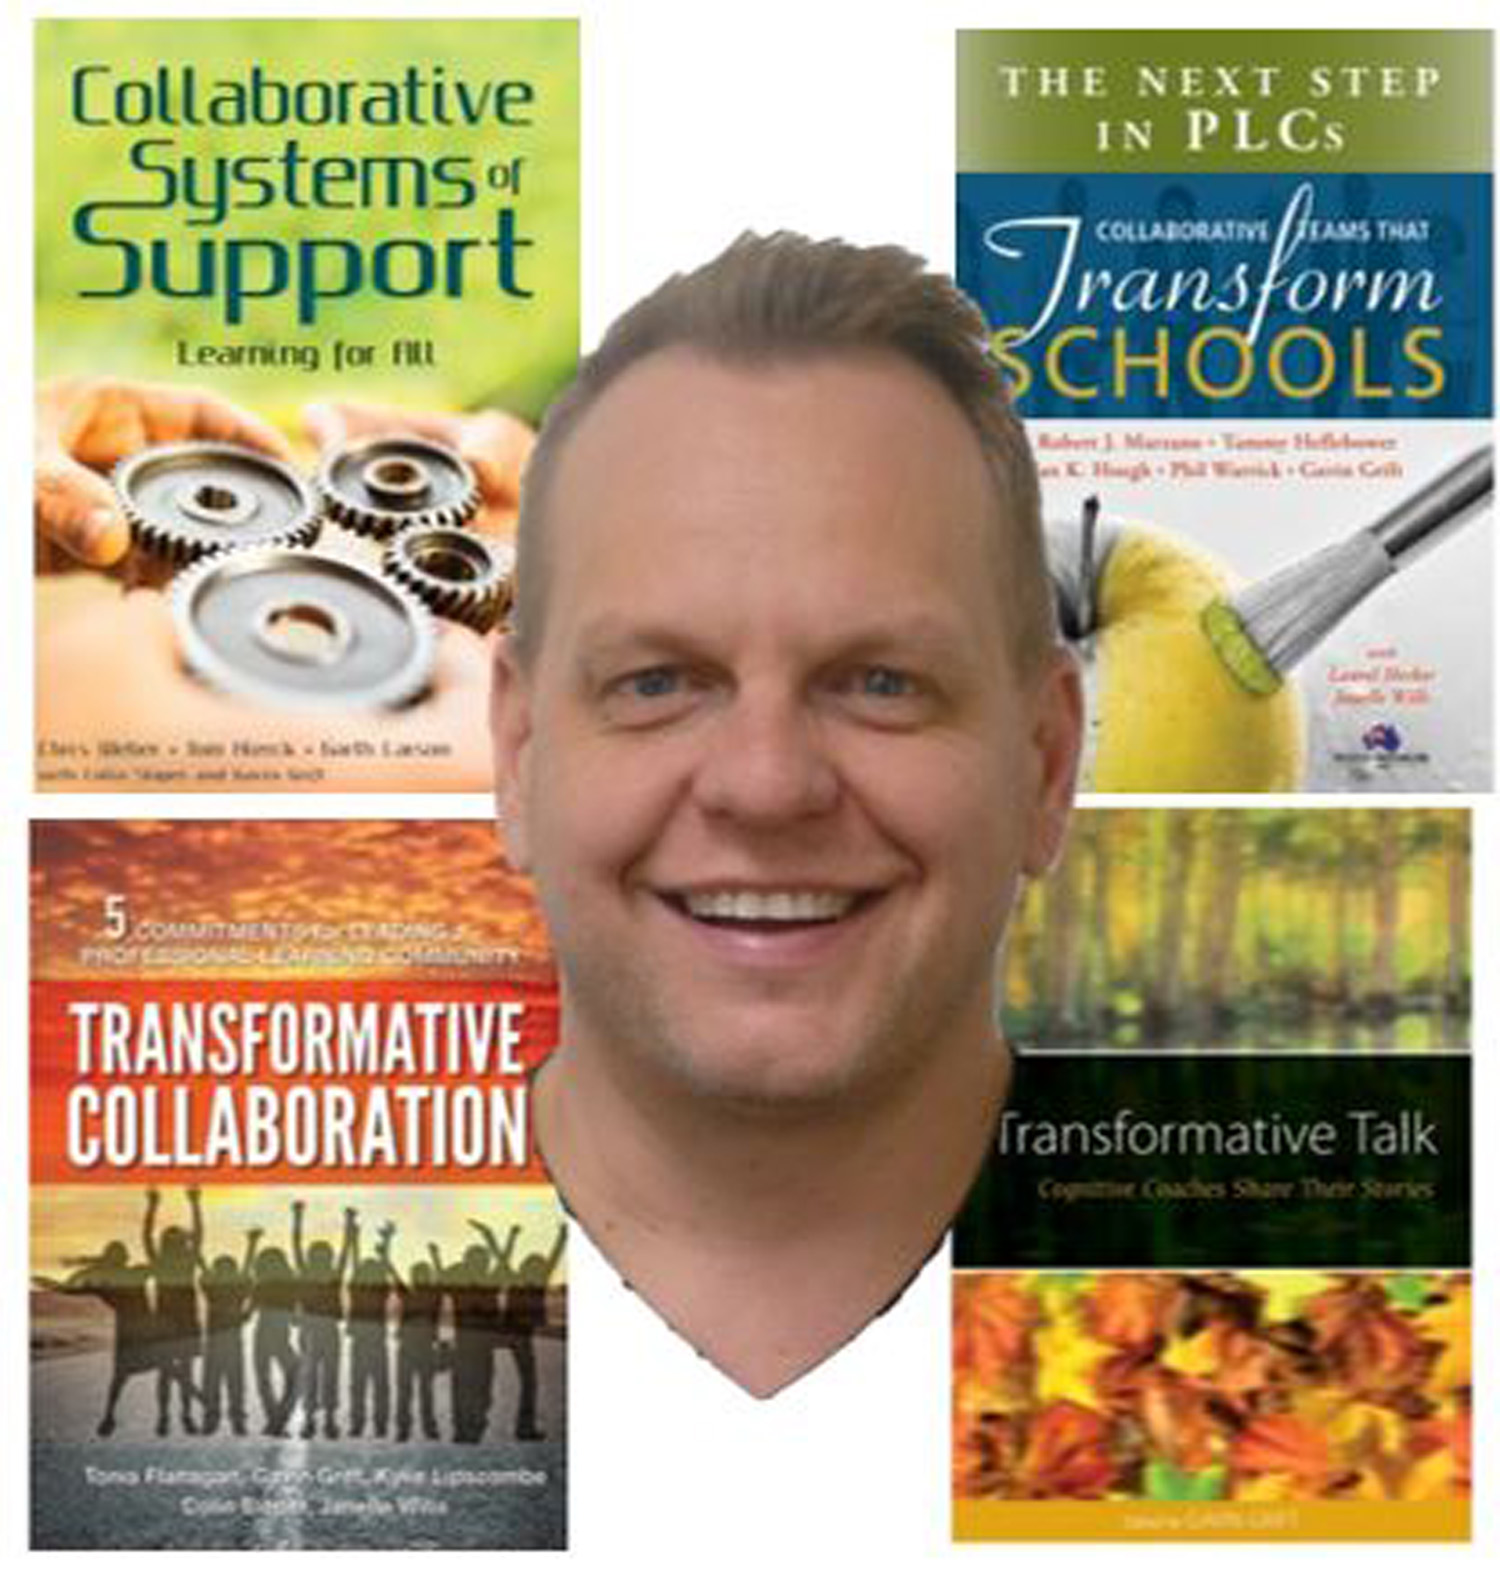 Collaborative Teaching Nz ~ Collaborative teams that truly transform schools with